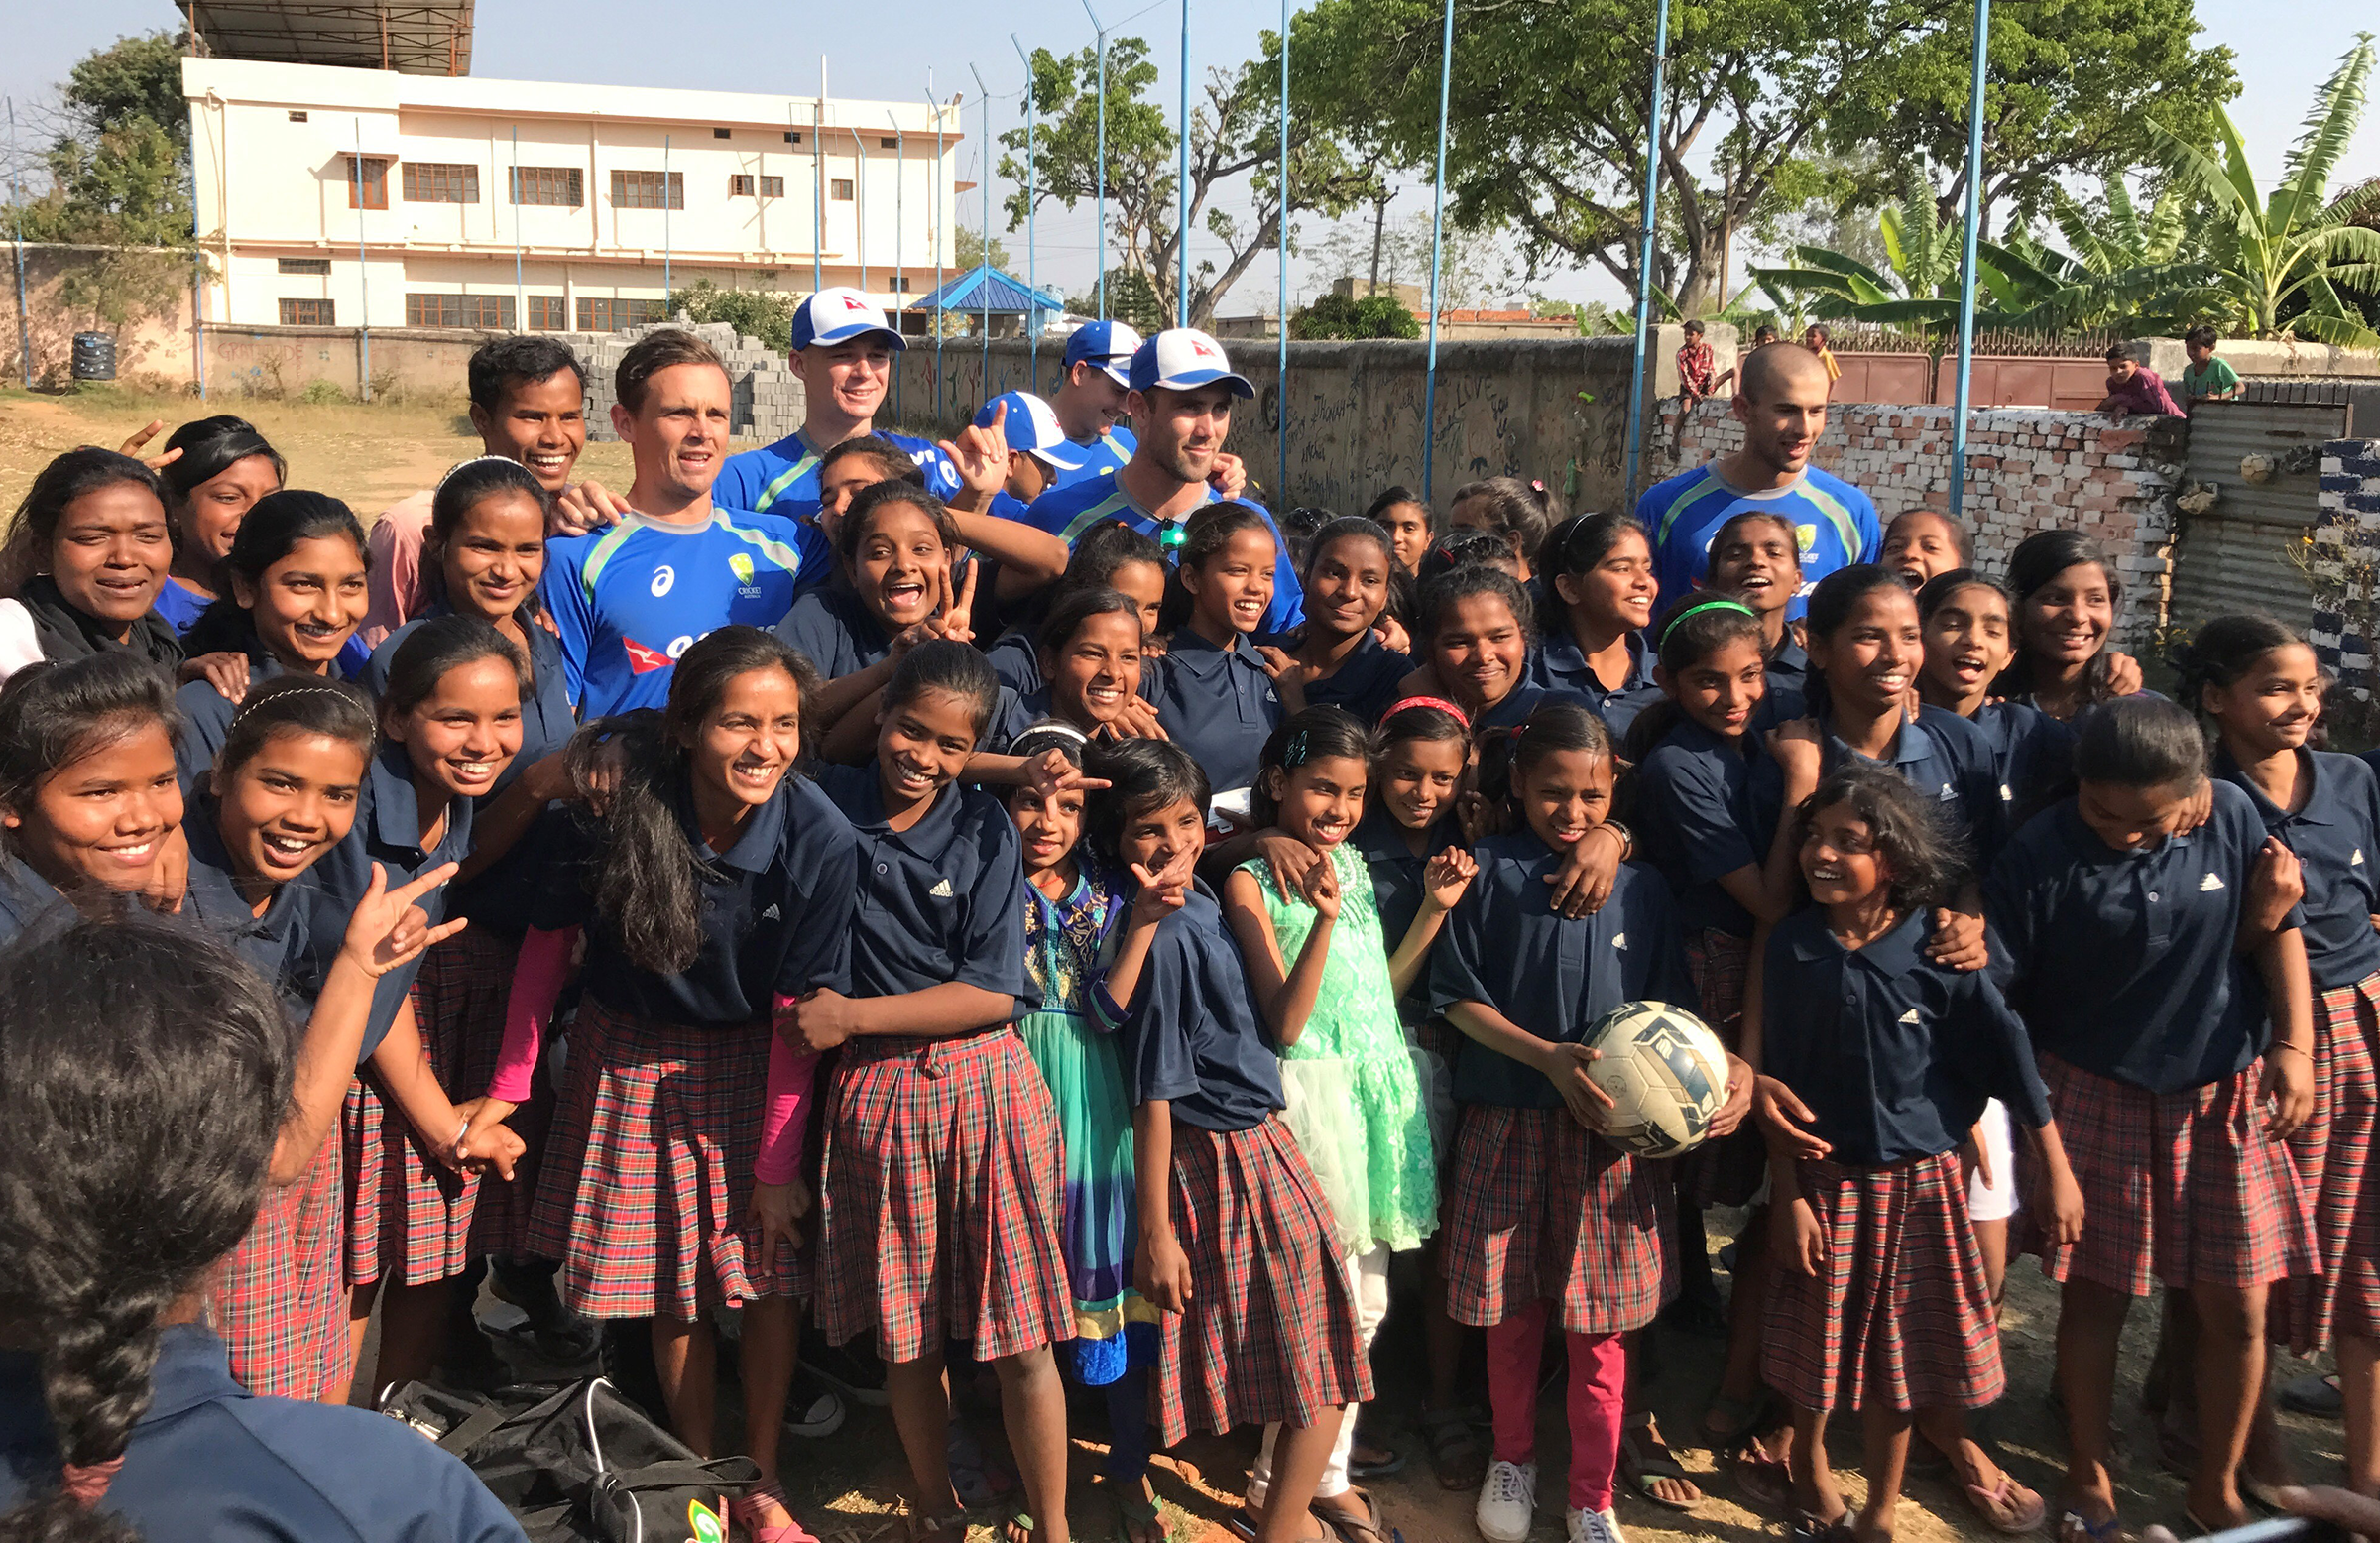 Australia's cricketers and the girls of the Yuwa school // cricket.com.au